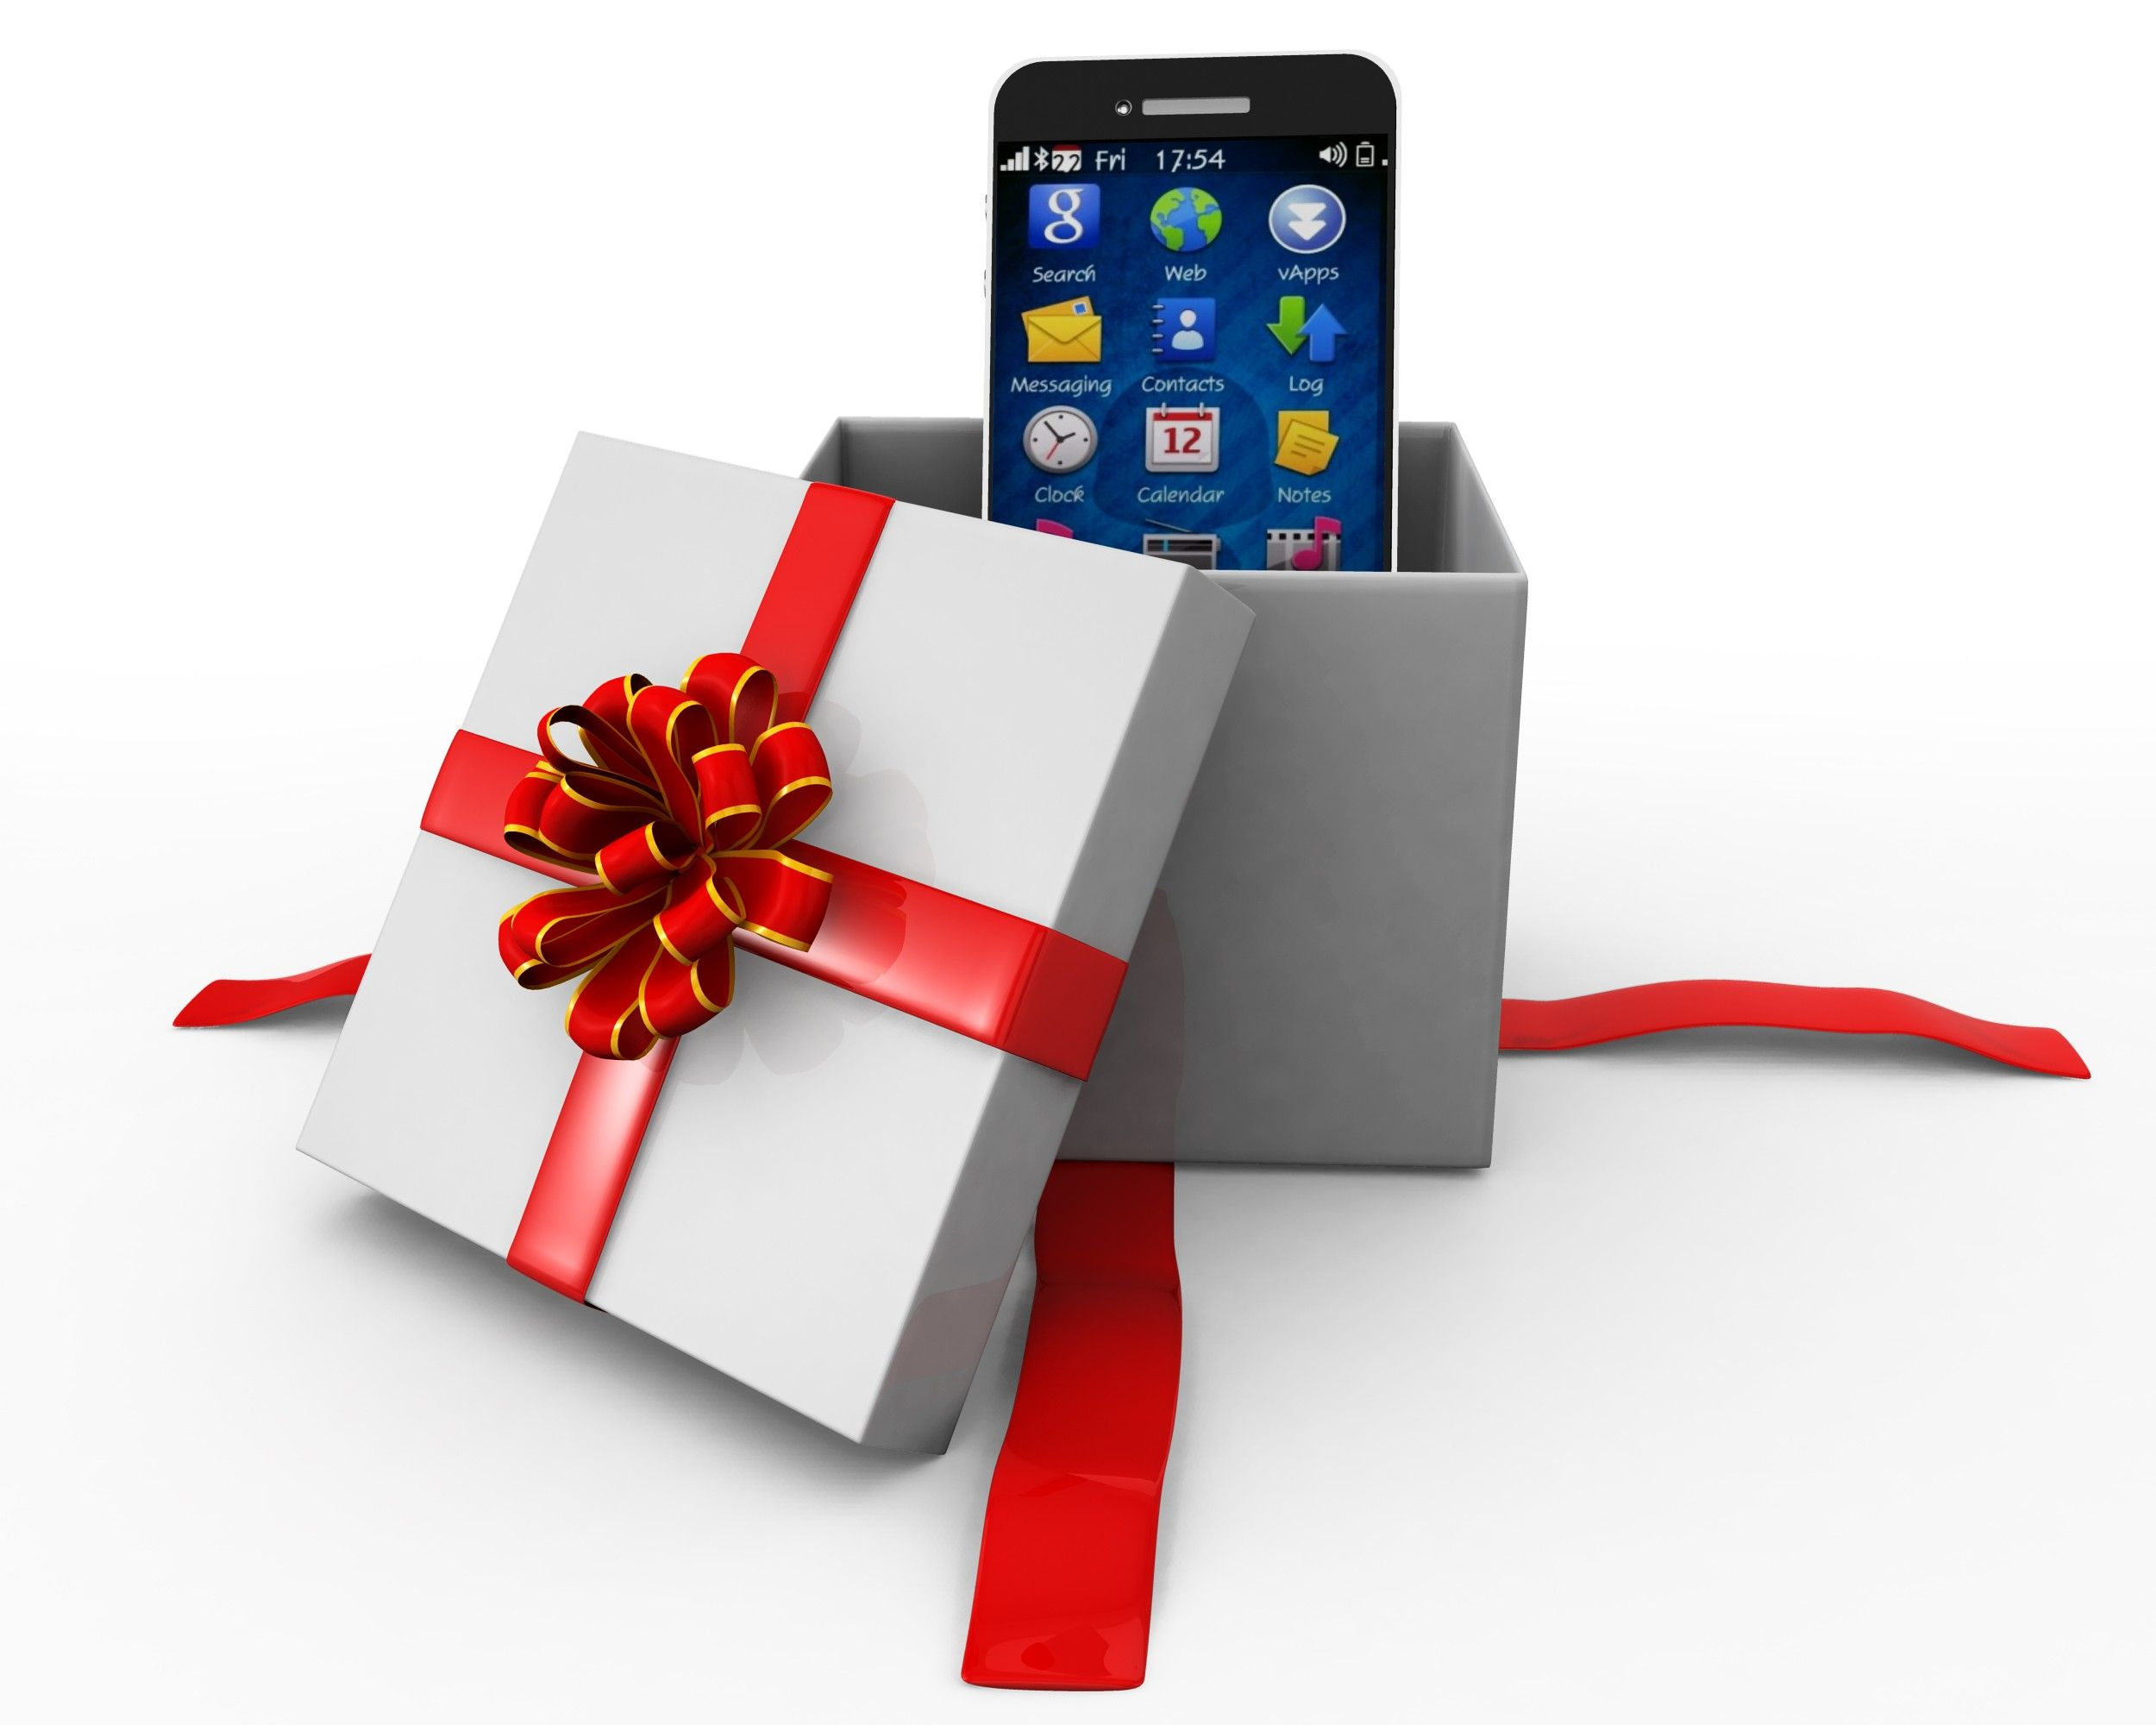 Top 5 Smartphones To Gift For Christmas And New Year